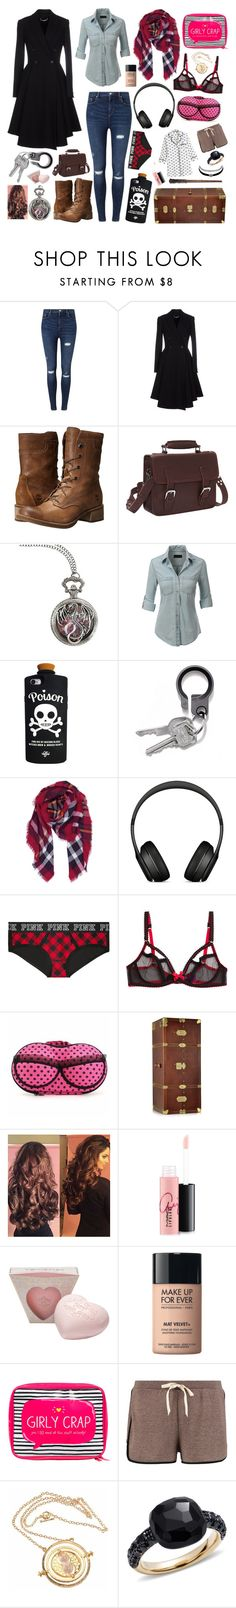 """Harry Potter RP OC"" by evil-fangirl-overlord ❤ liked on Polyvore featuring Miss Selfridge, Givenchy, Timberland, Vagabond Traveler, LE3NO, Valfré, Humble Chic, Beats by Dr. Dre, L'Agent By Agent Provocateur and The Bridge"